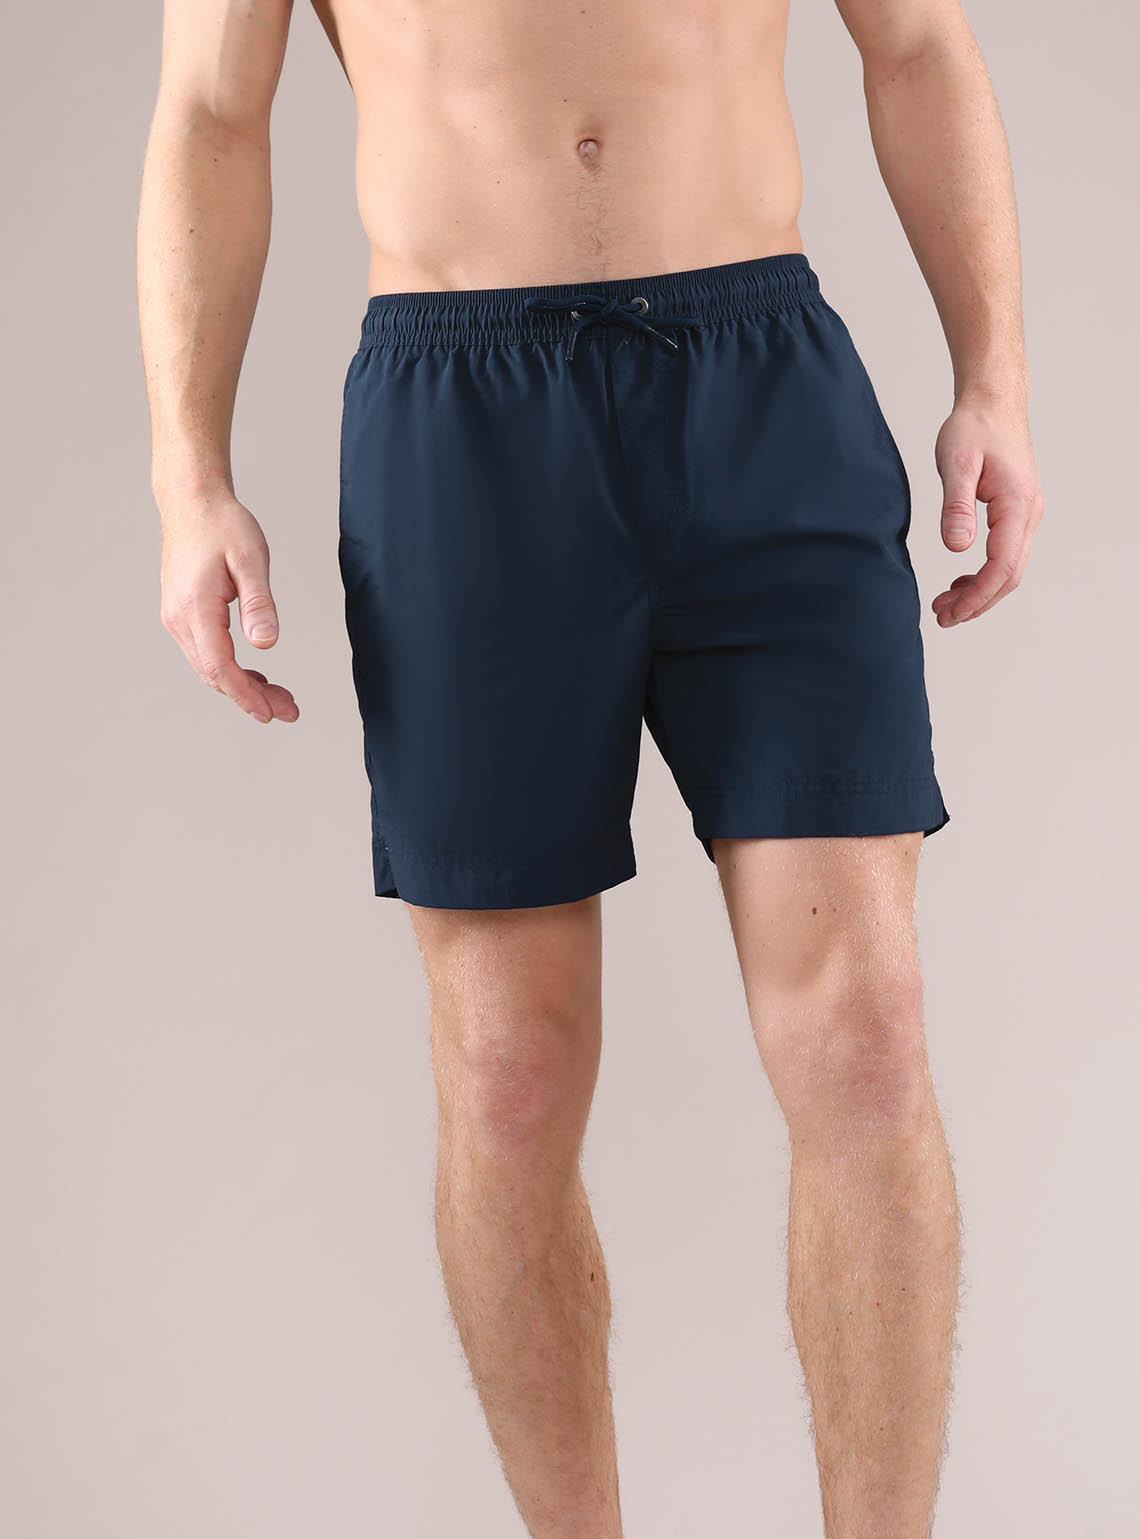 Men's Drawstring Swimshort